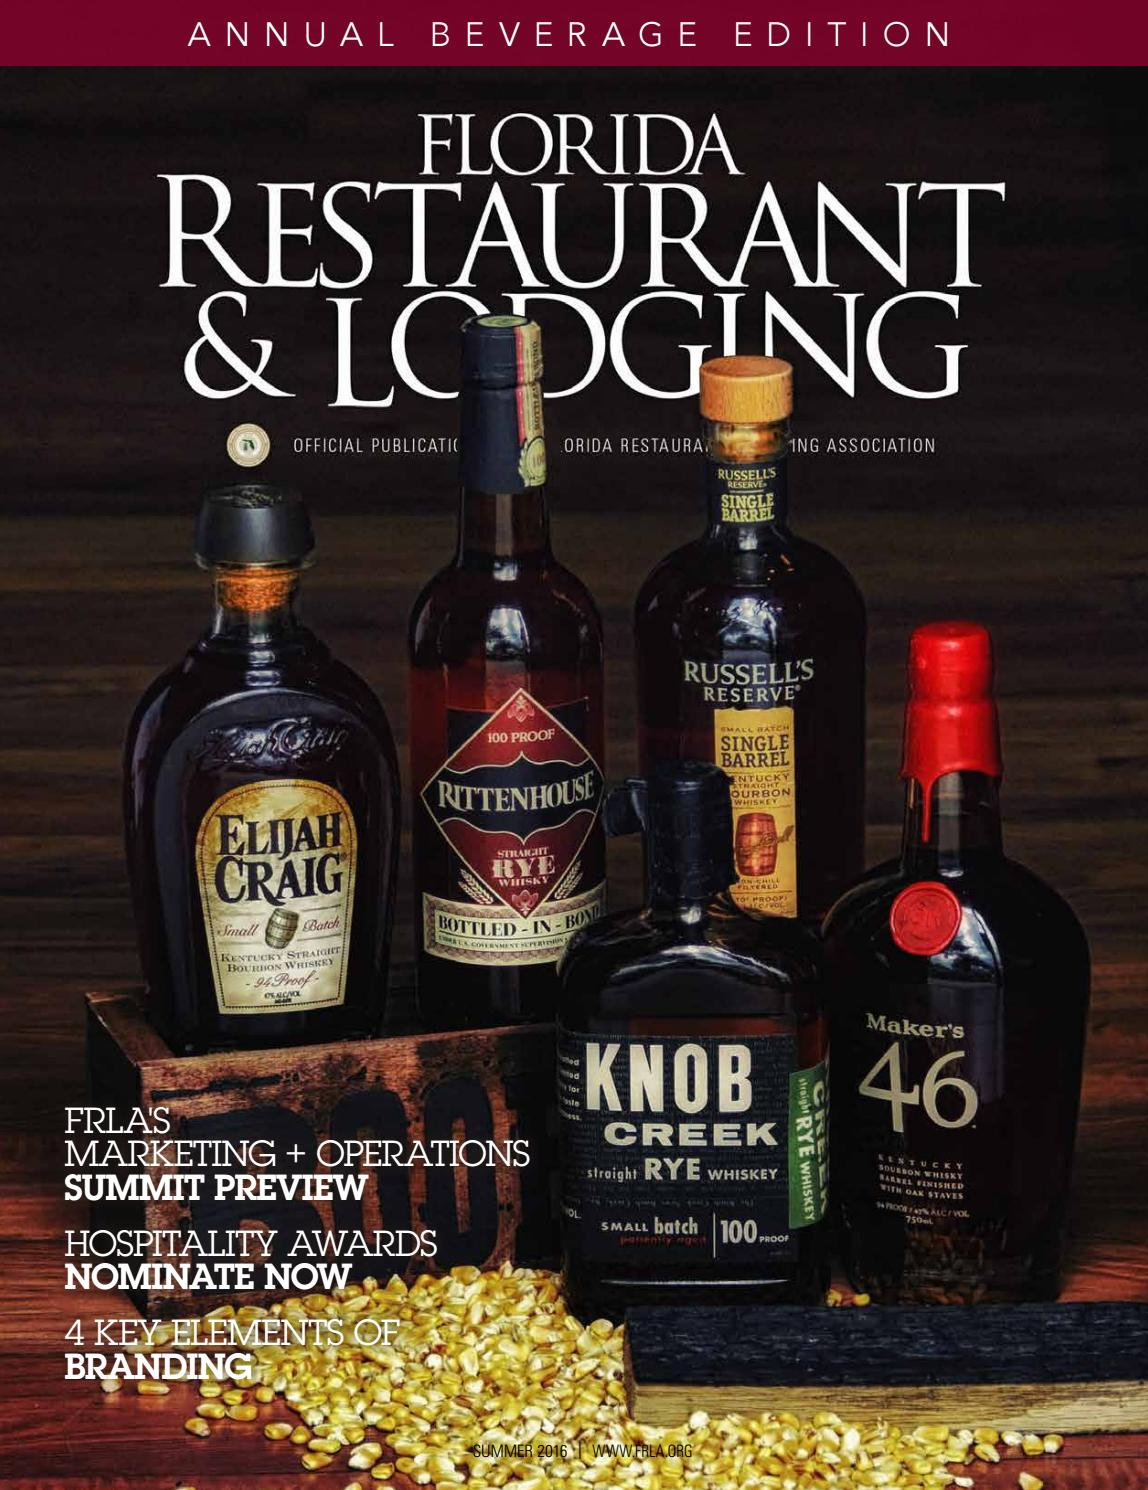 florida restaurant lodging magazine summer 2016 by florida restaurant and lodging magazine issuu - Raised Panel Restaurant 2016